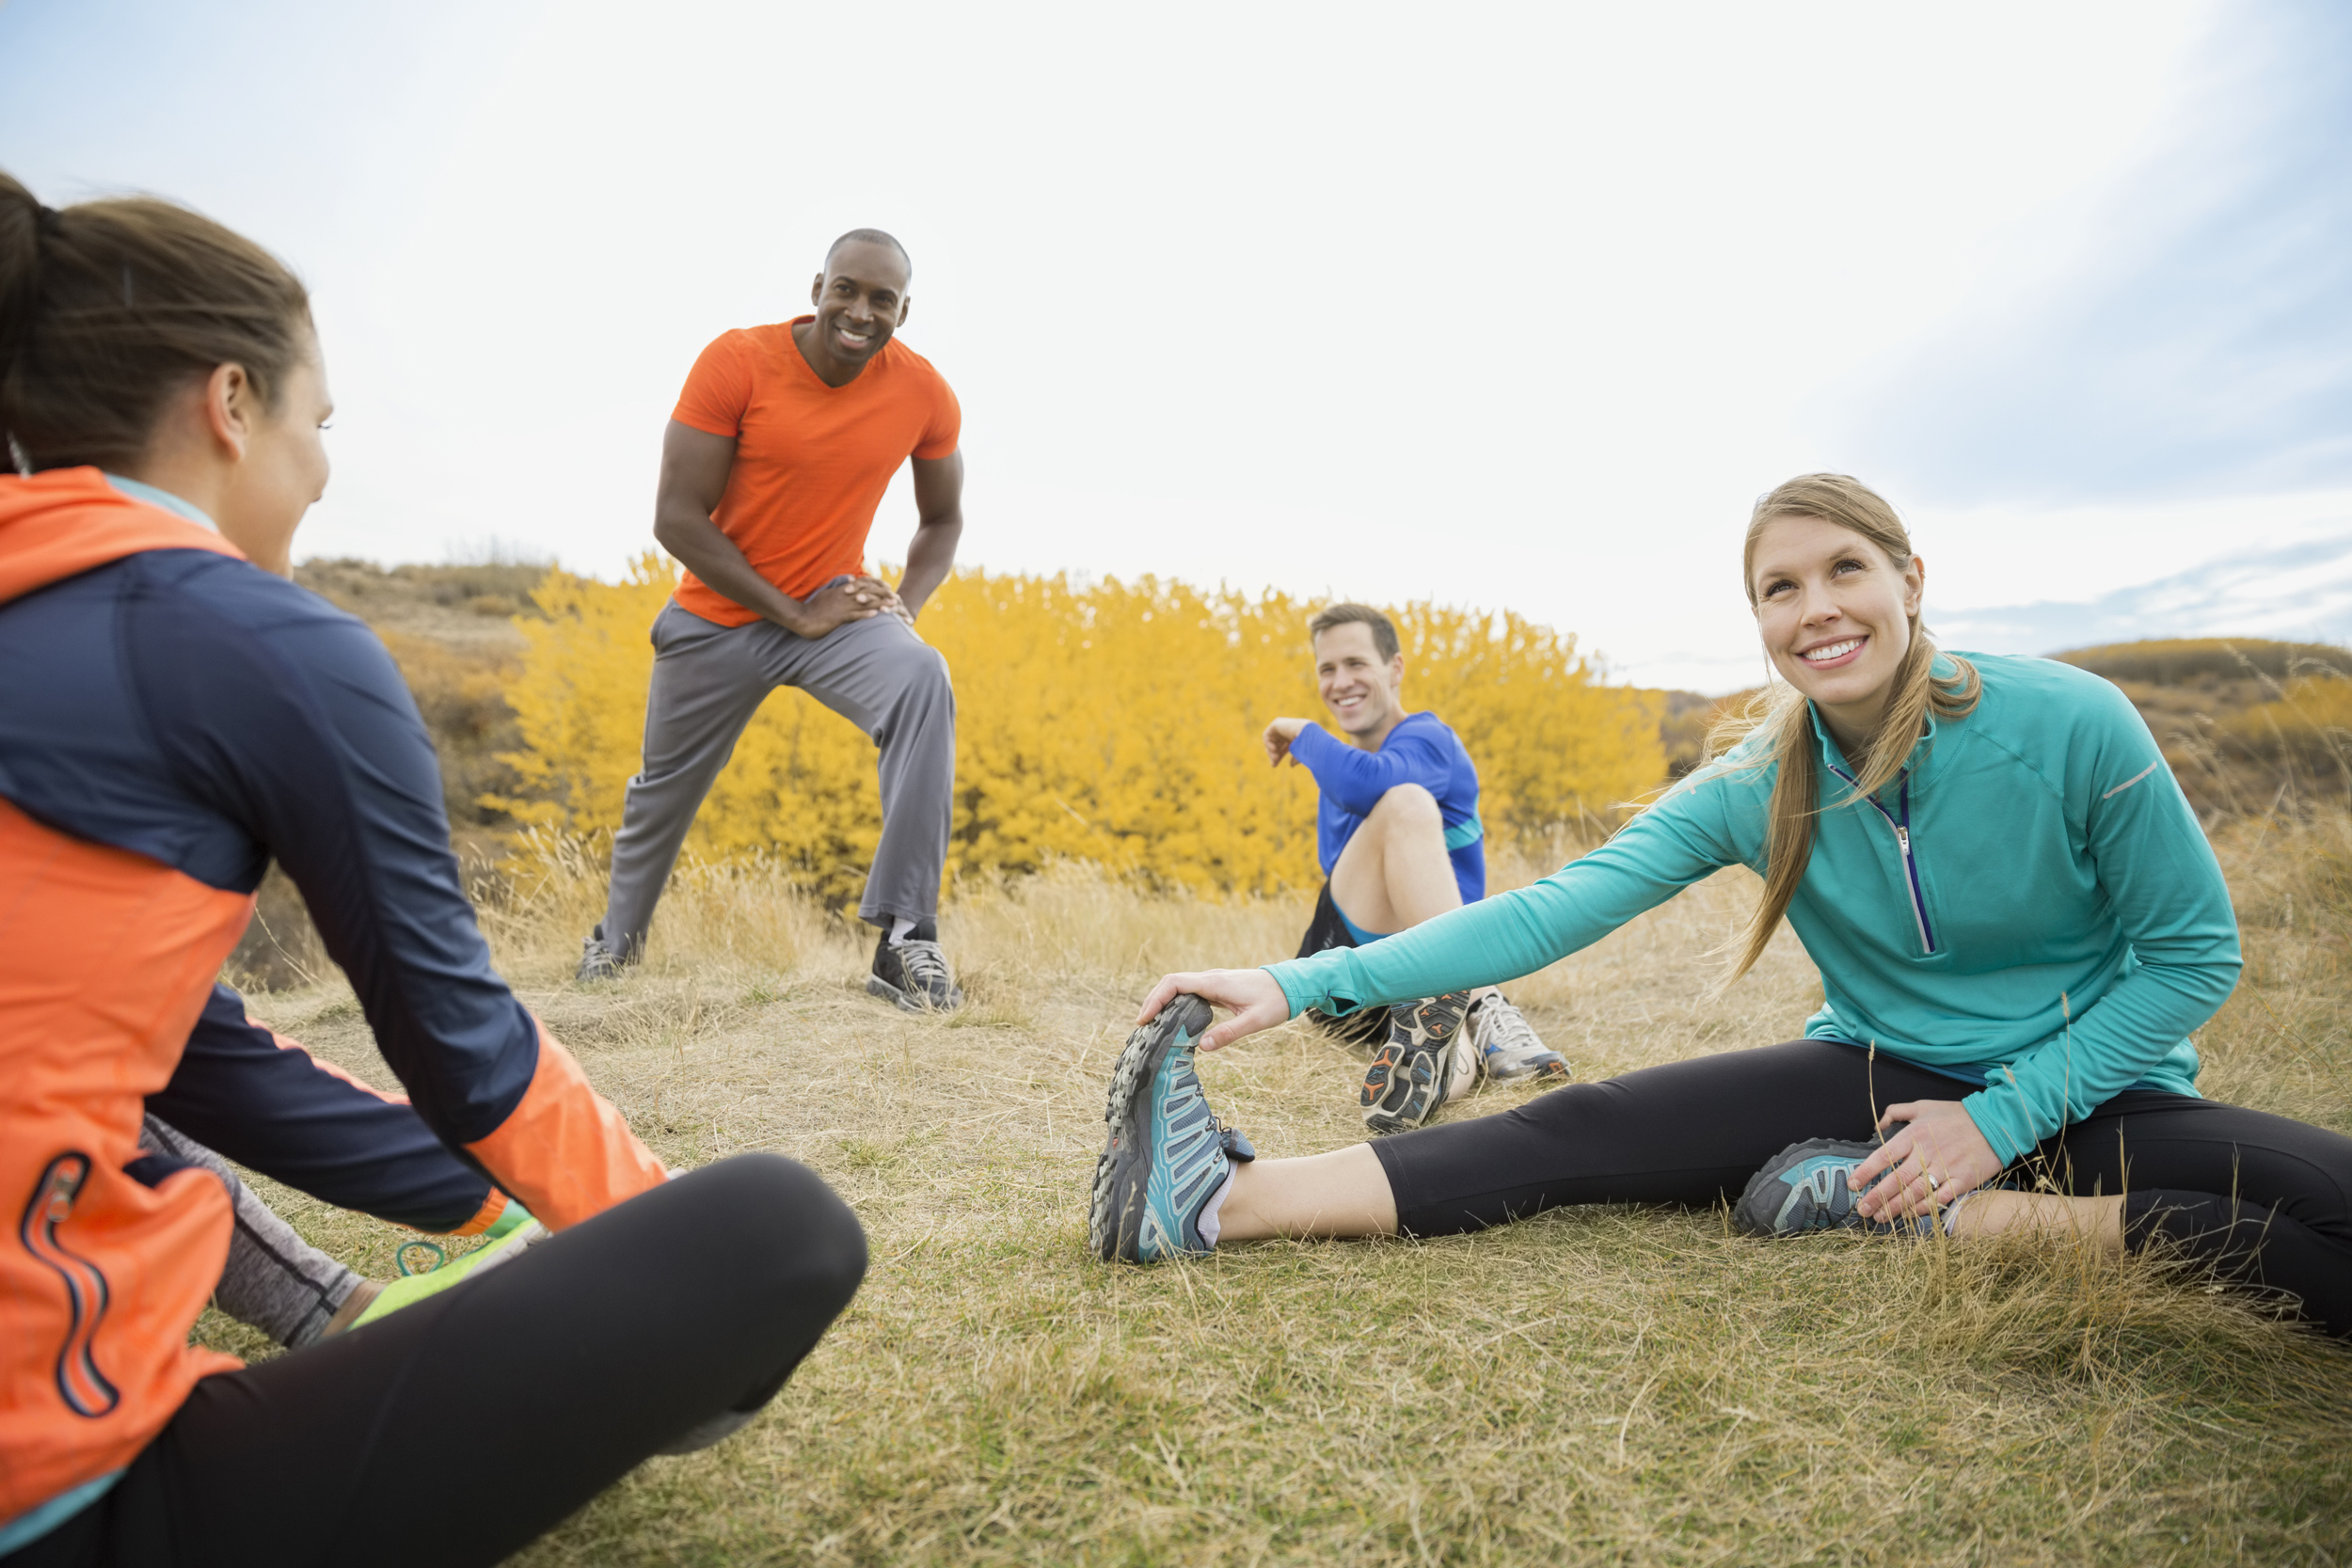 Runners stretching in field